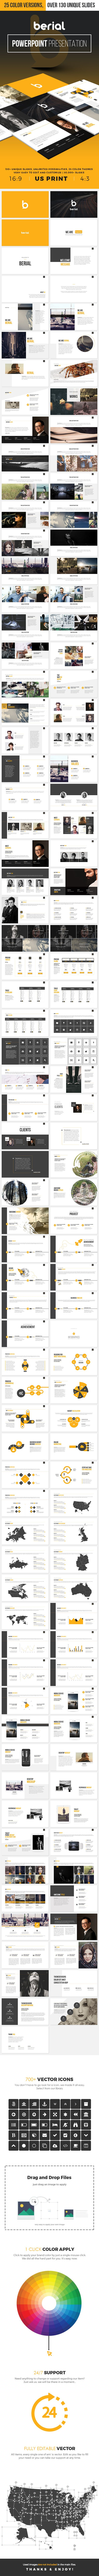 Berial Powerpoint  #powerpoint #marketing presentation • Download ➝ https://graphicriver.net/item/berial-powerpoint/18262573?ref=pxcr